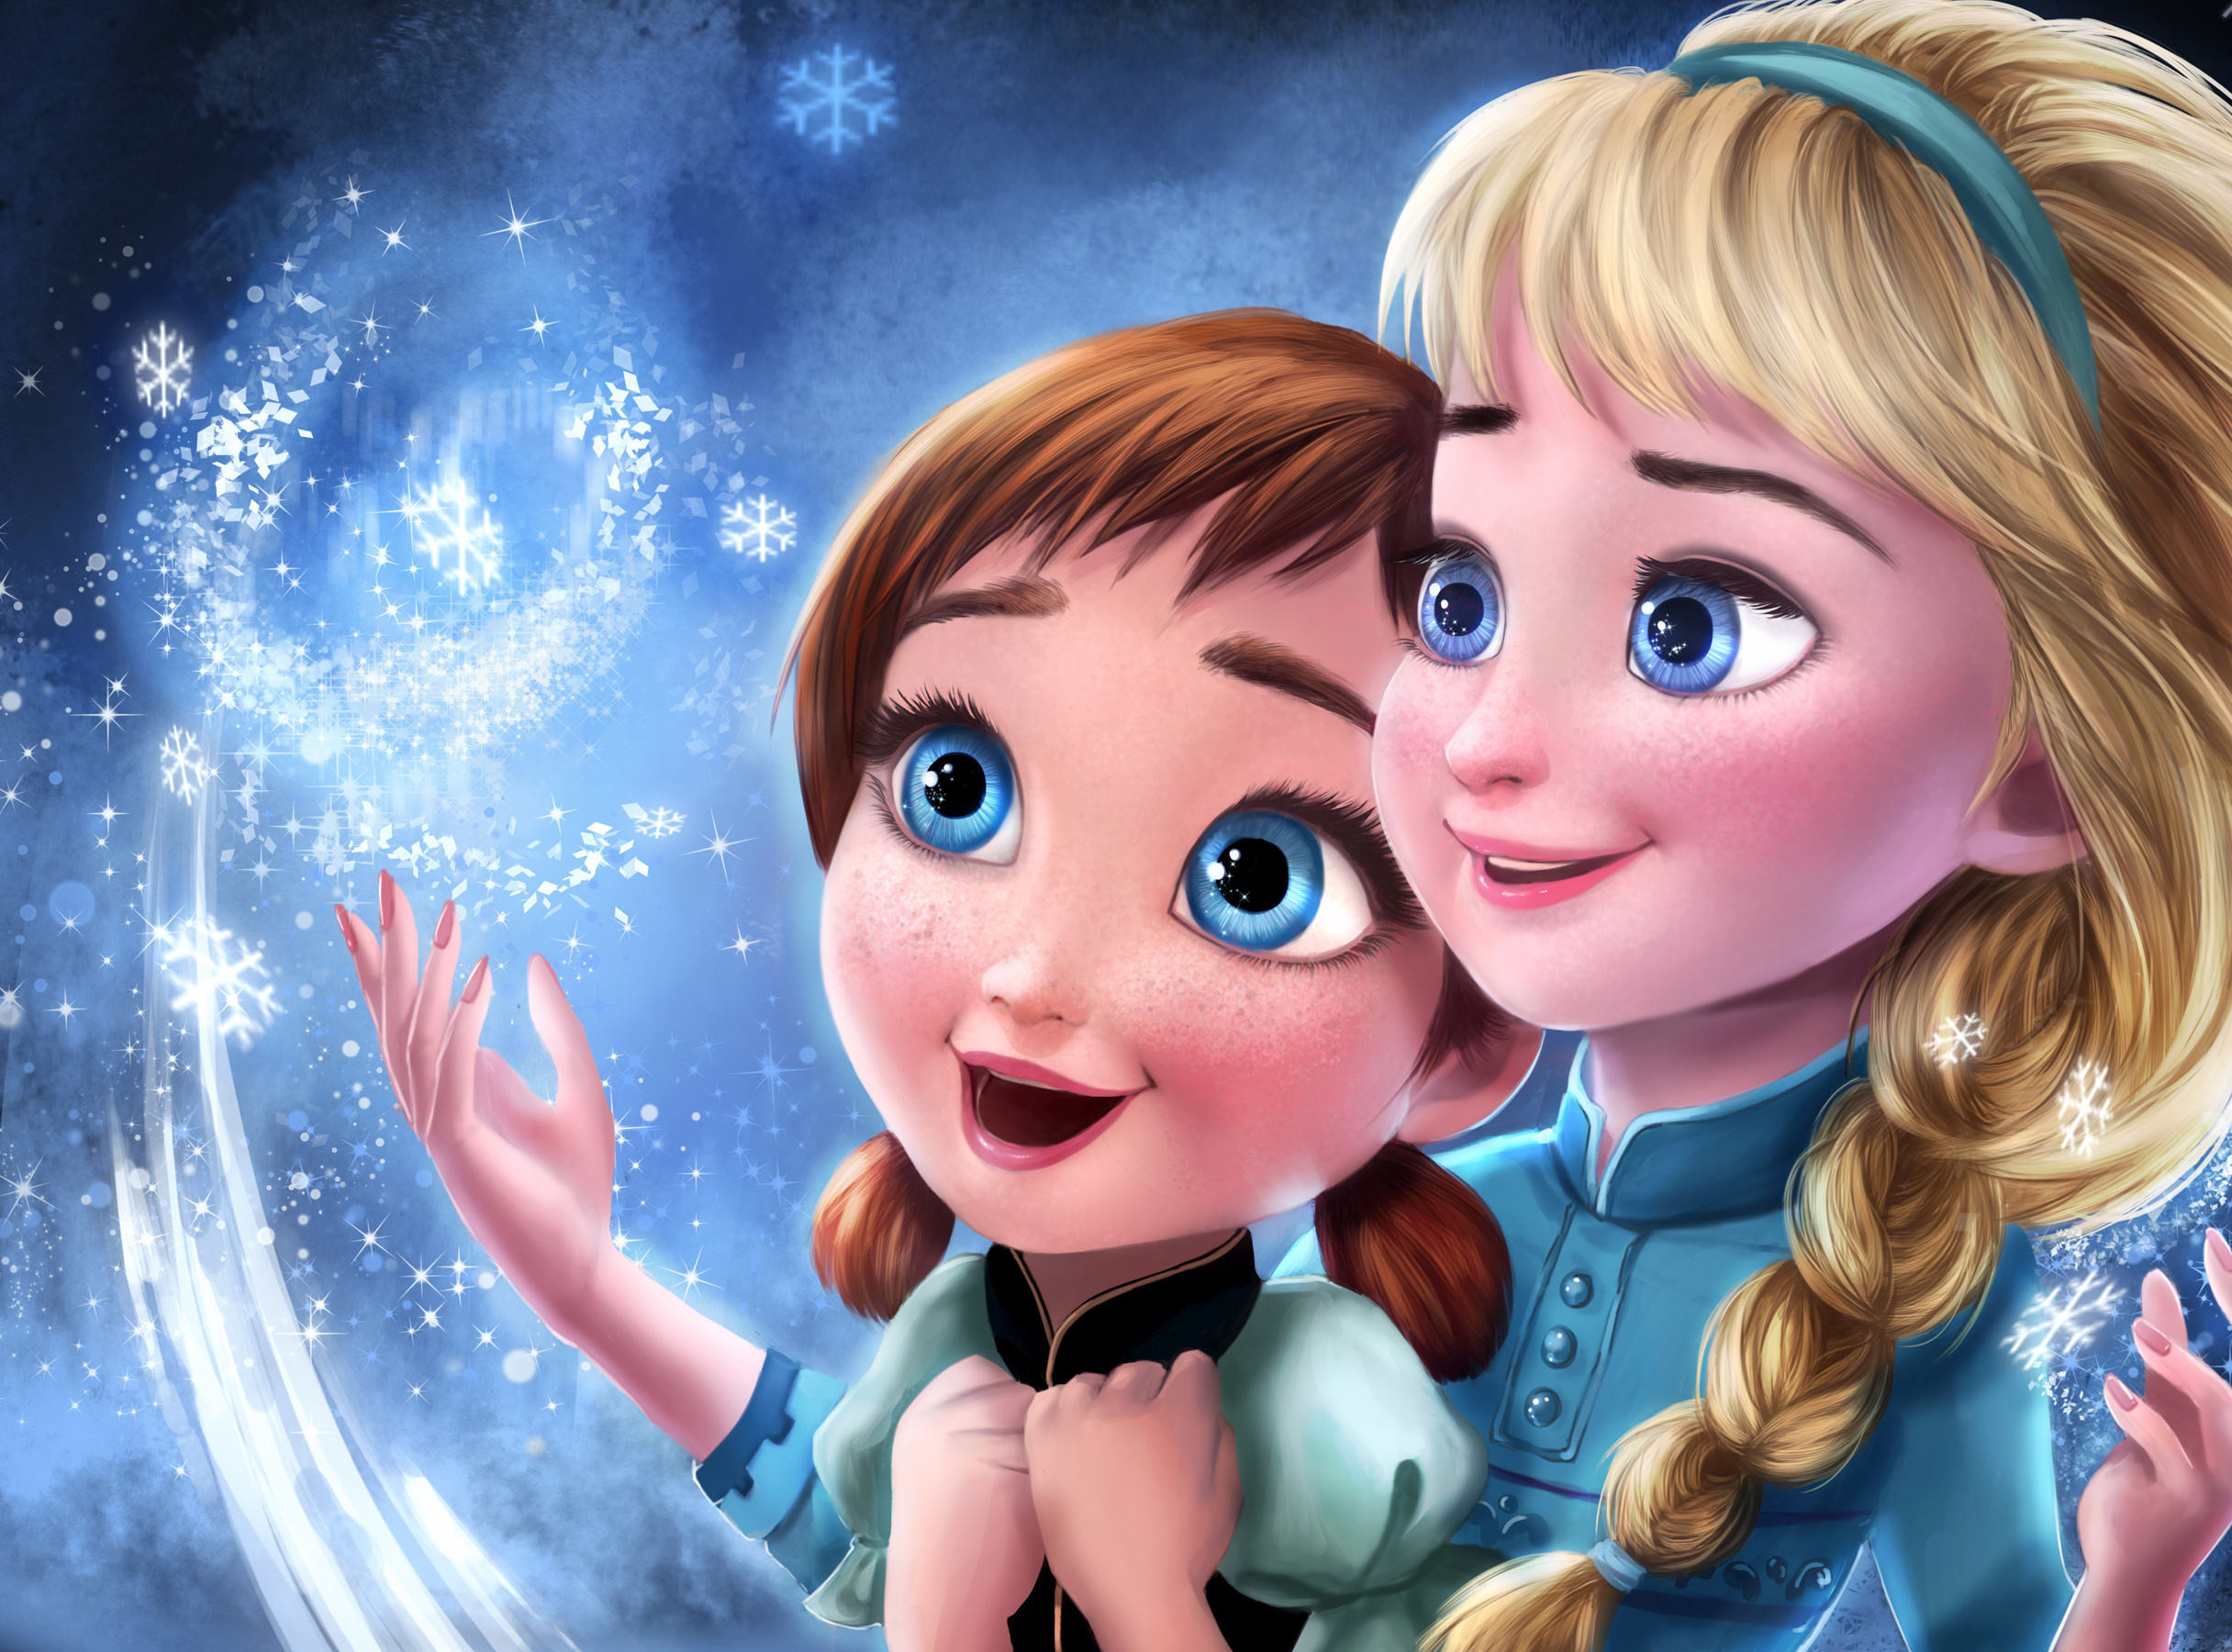 2432x1800 ... 21 frozen wallpapers disney backgrounds images pictures ...